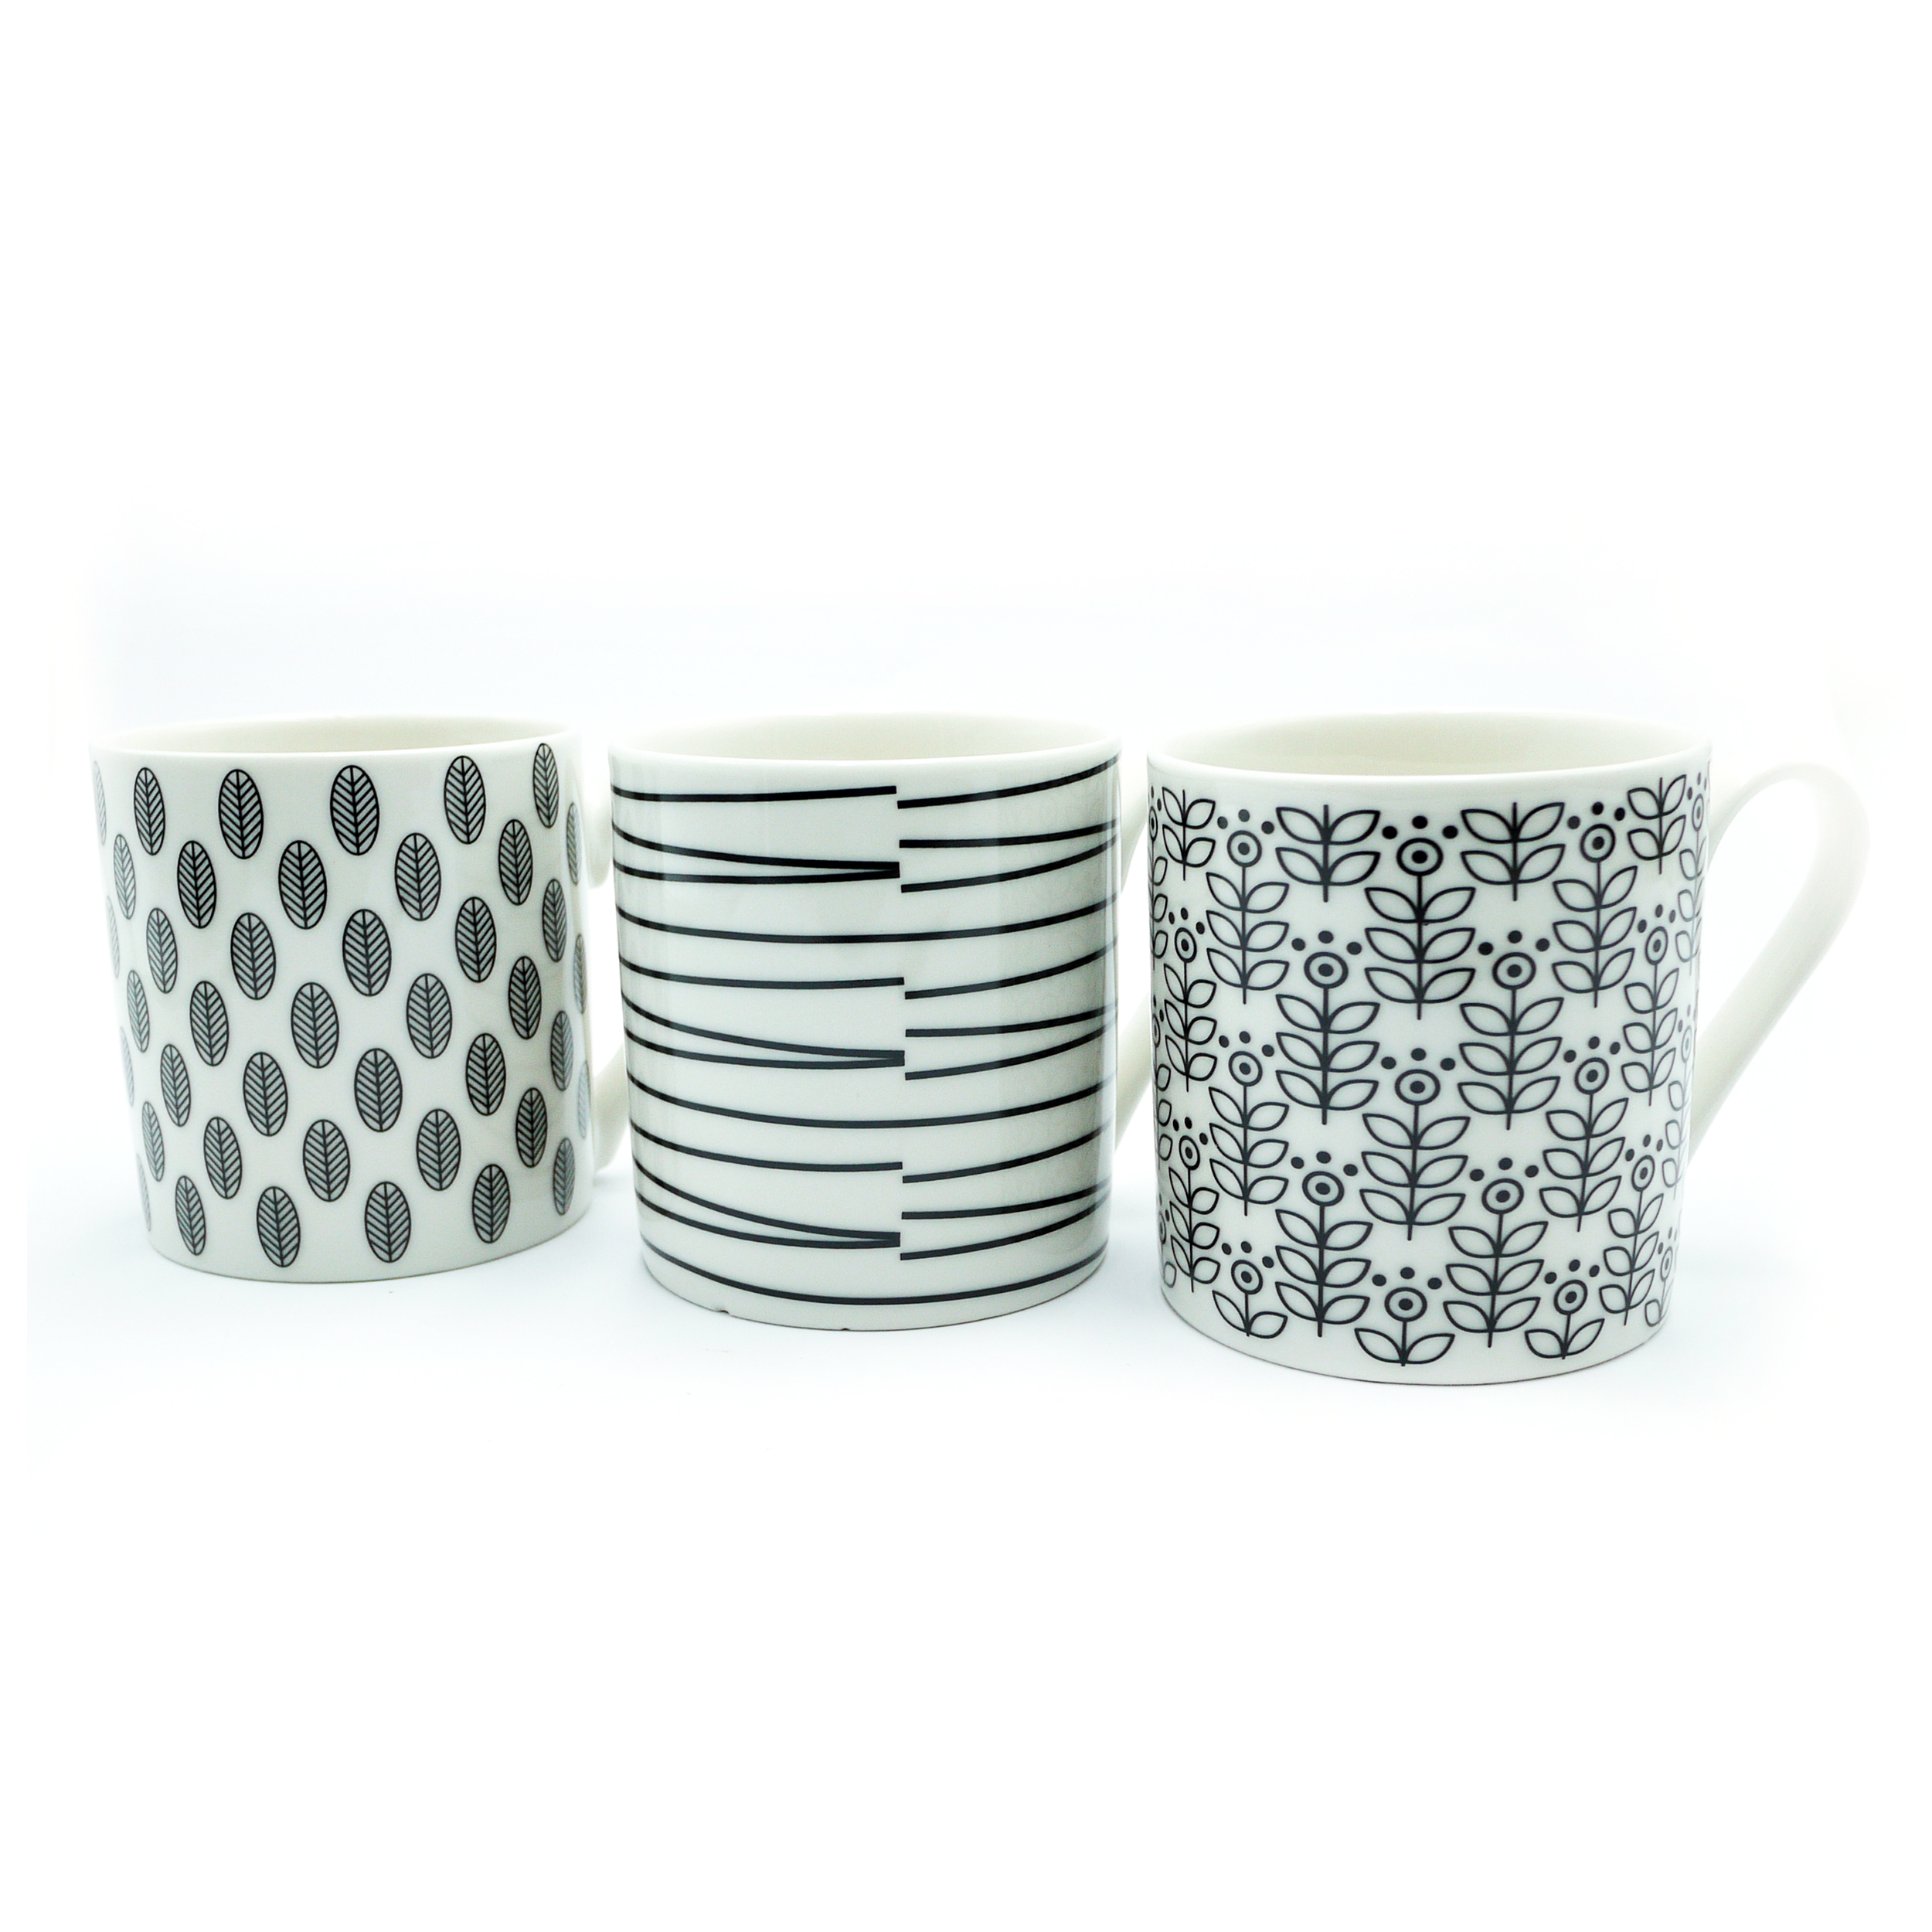 Tableware Squat Mugs Patterned 12oz Black & White Ref 0399290 Pack 12